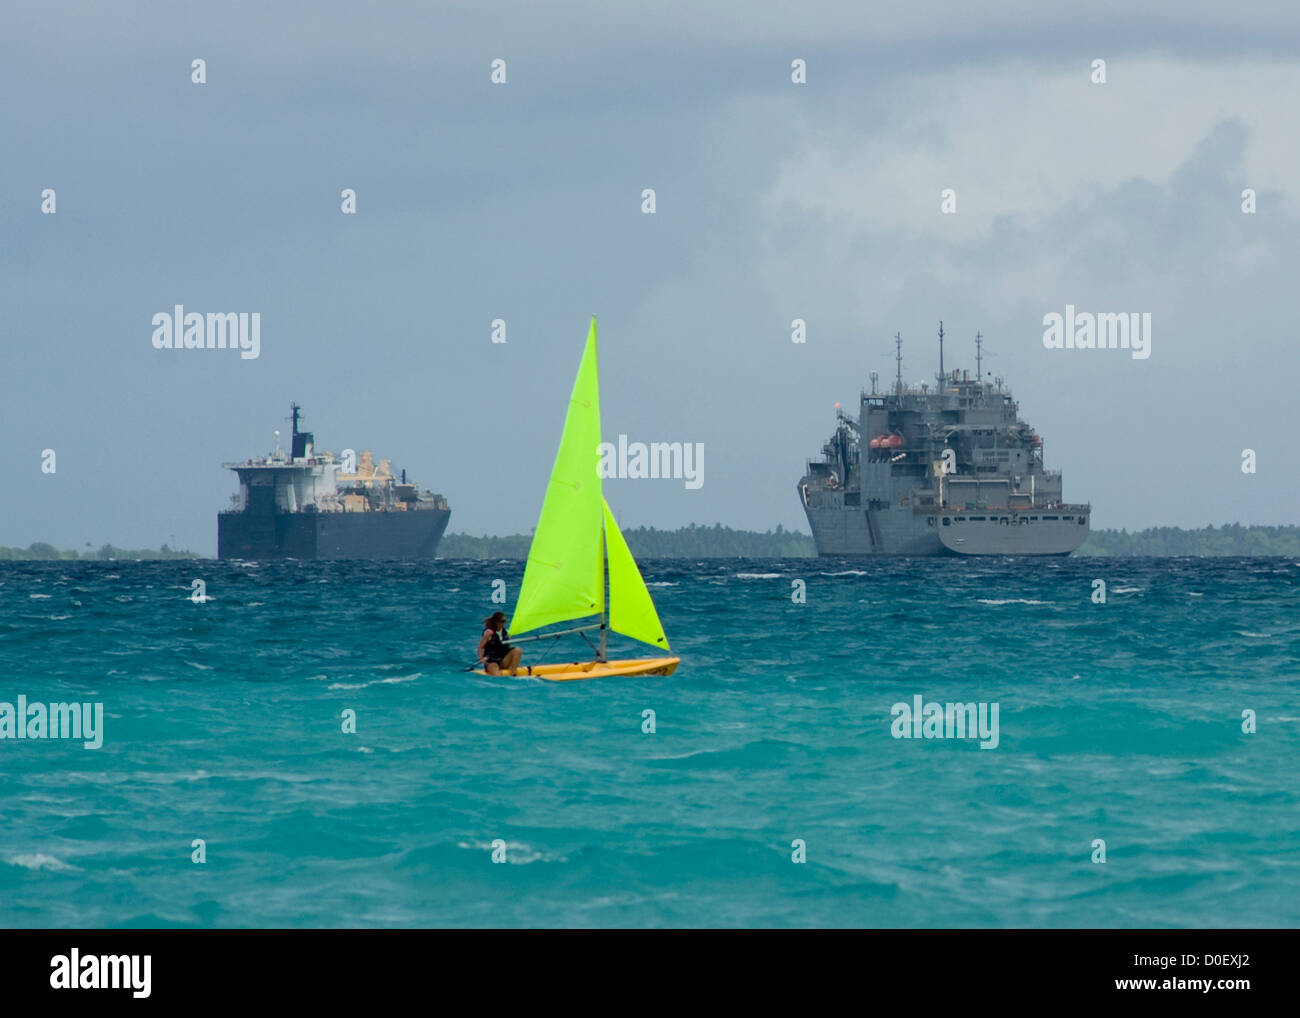 A US Sailor sails on a Pico sailboat November 4, 2012 In Diego Garcia, British Indian Ocean Territory. - Stock Image